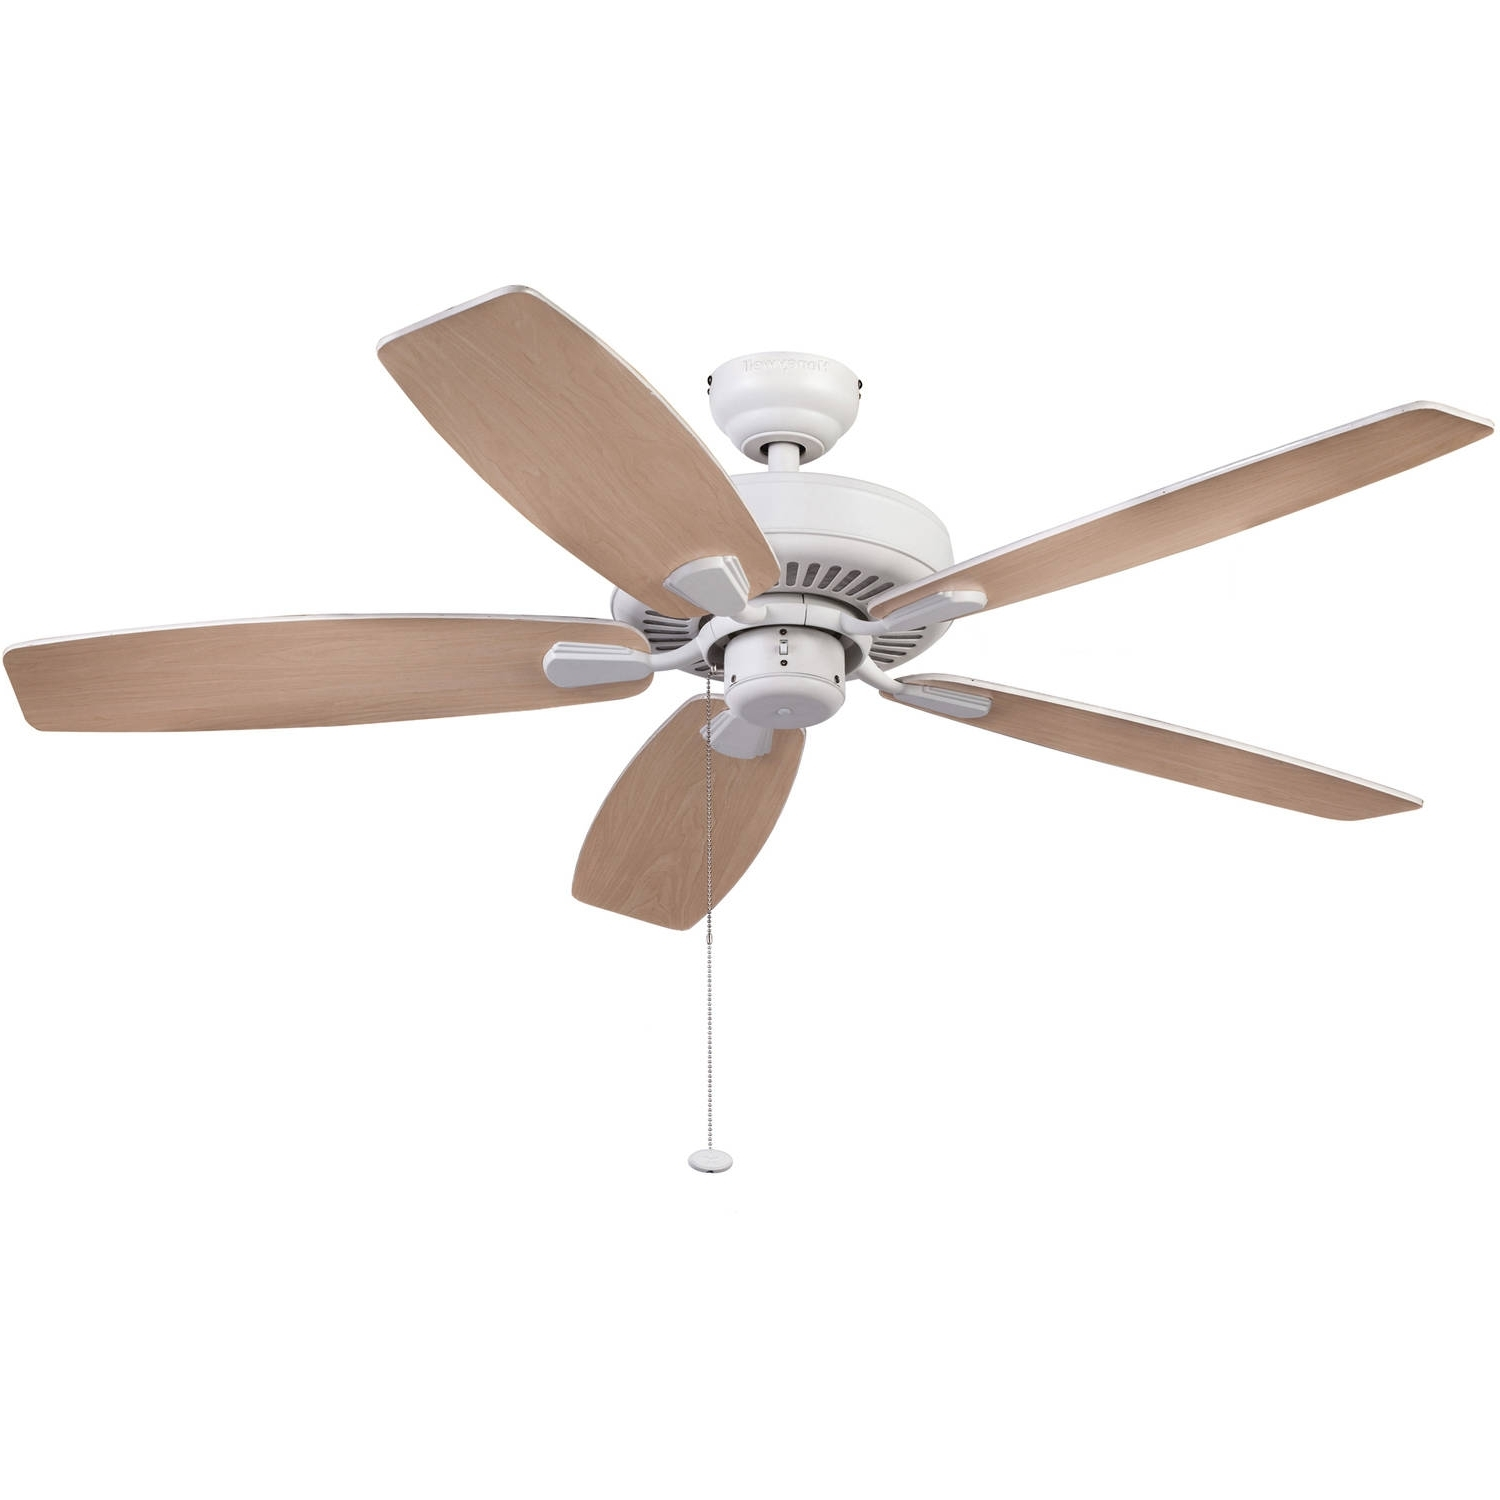 """Trendy Outdoor Ceiling Fans With Lights At Walmart With Regard To 52"""" Honeywell Blufton Outdoor Ceiling Fan, White – Walmart (View 12 of 20)"""